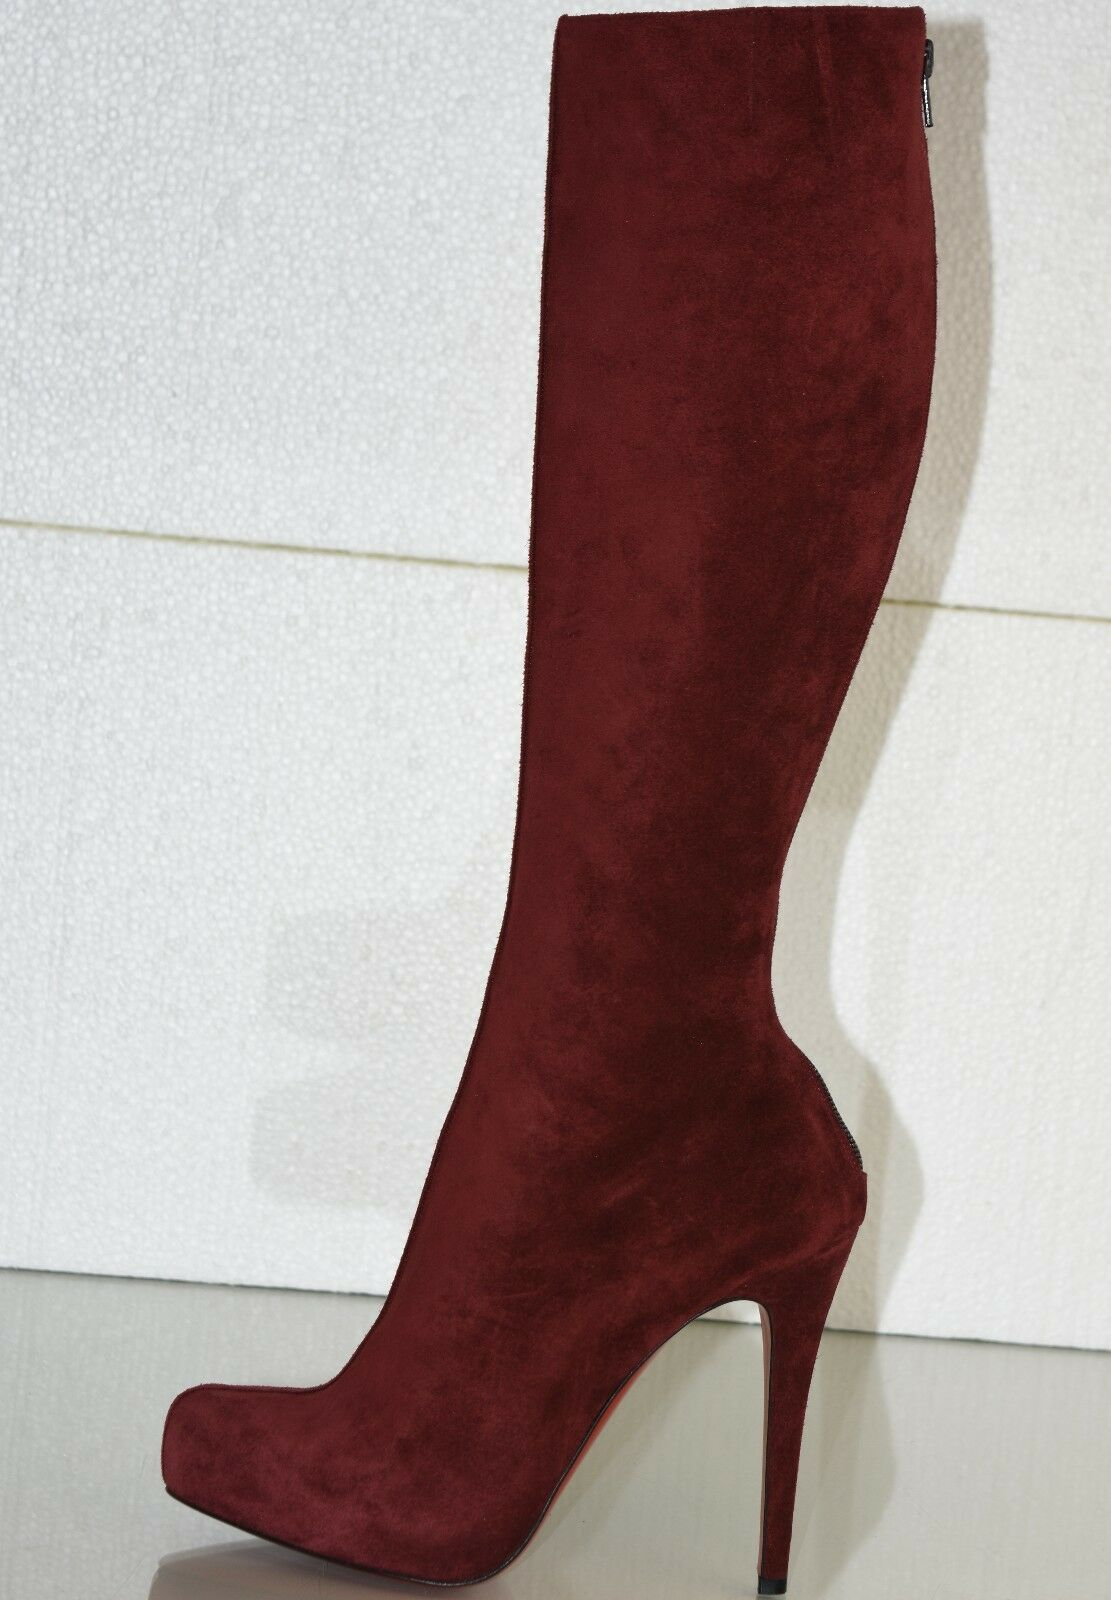 1825 New CHRISTIAN LOUBOUTIN Alta Ariella Burgundy Suede Knee H BOOTS SHOES 39